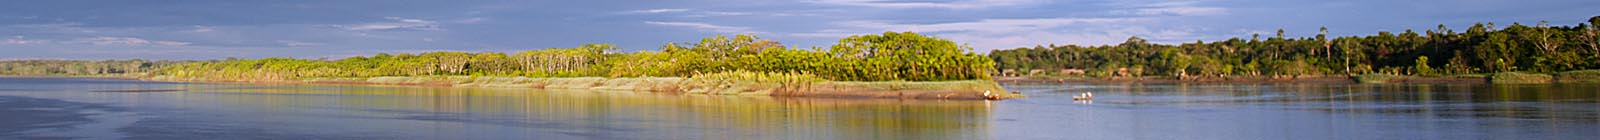 Headland in the Maranon River, mellow morning light, Peruvian jungle - Banner